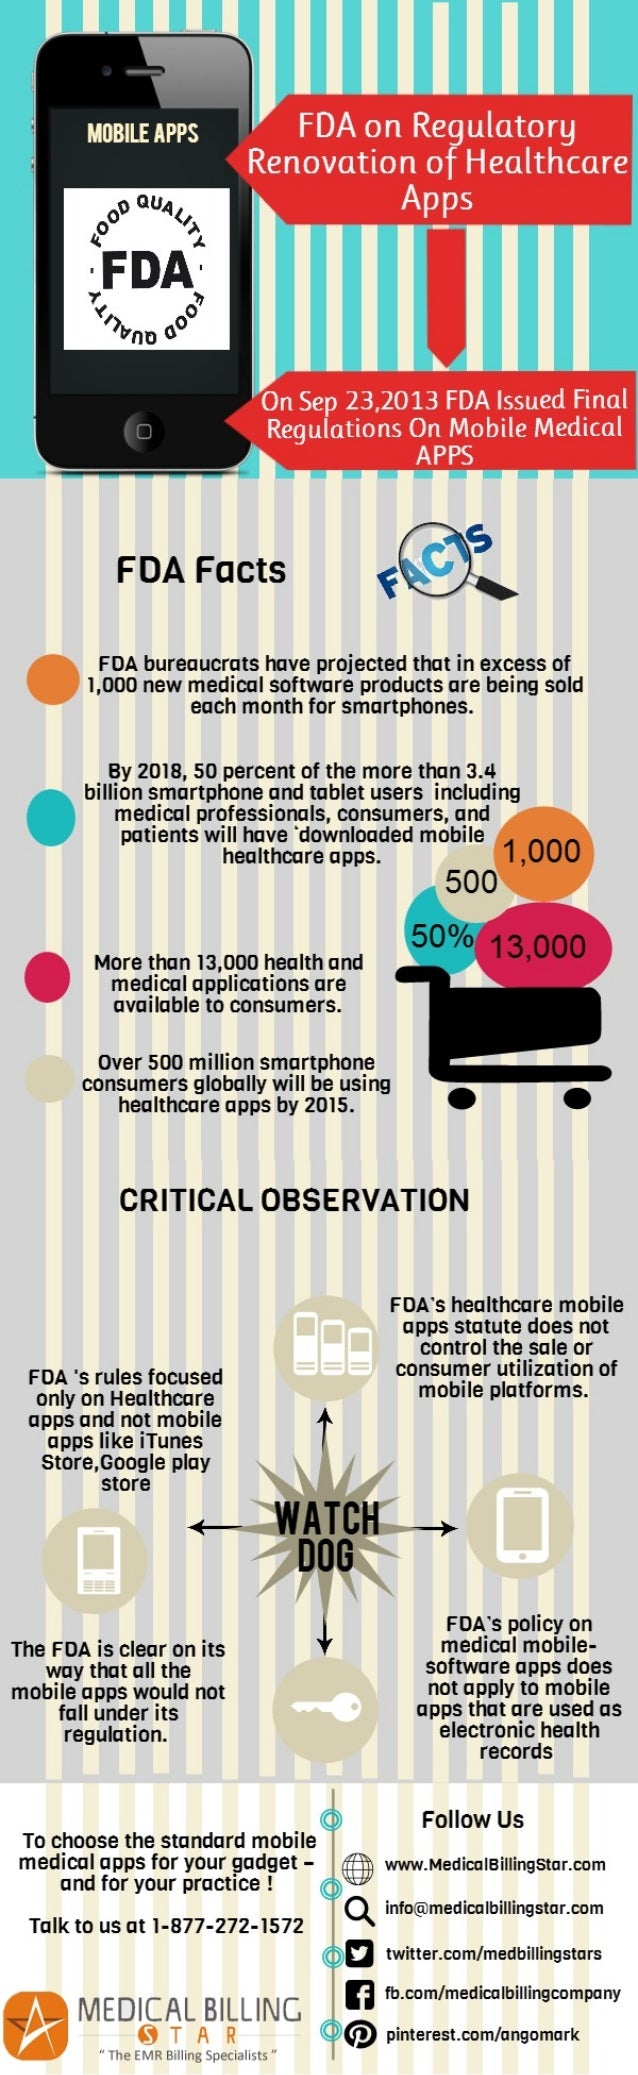 FDA's Final Canon on Healthcare Mobile-Software Apps